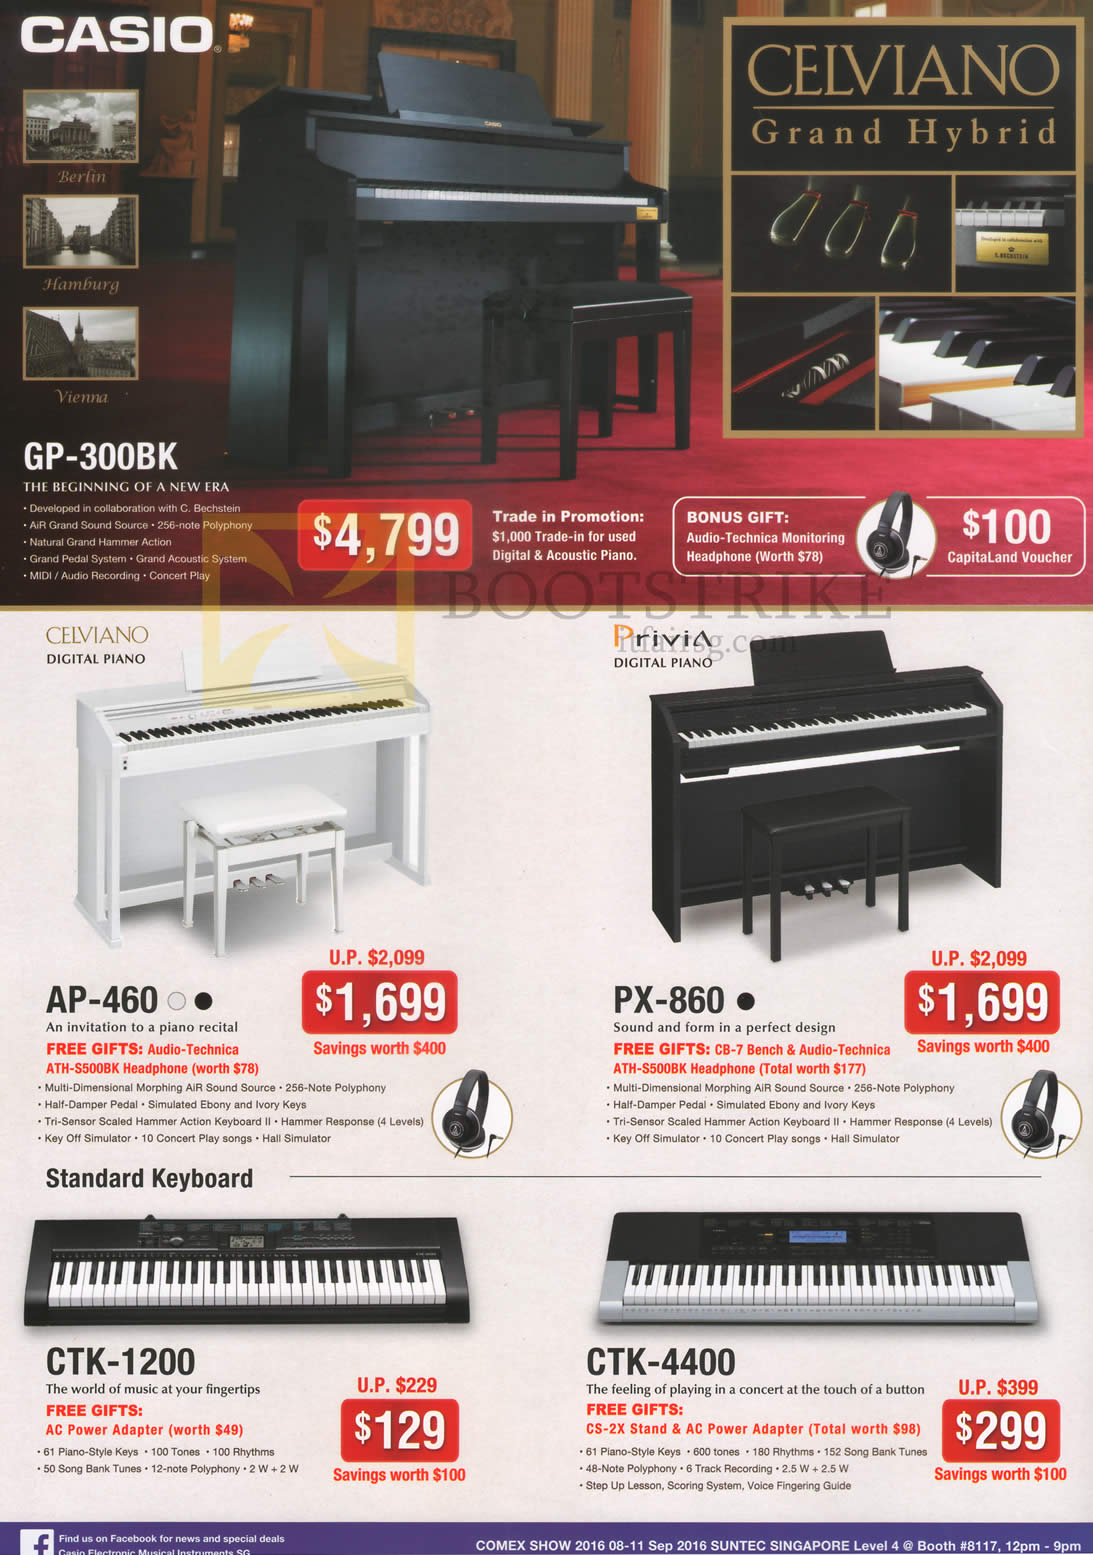 COMEX 2016 price list image brochure of Casio Keyboards GP-300BK, AP-460, PX-860, CTK-1200, CTK-4400